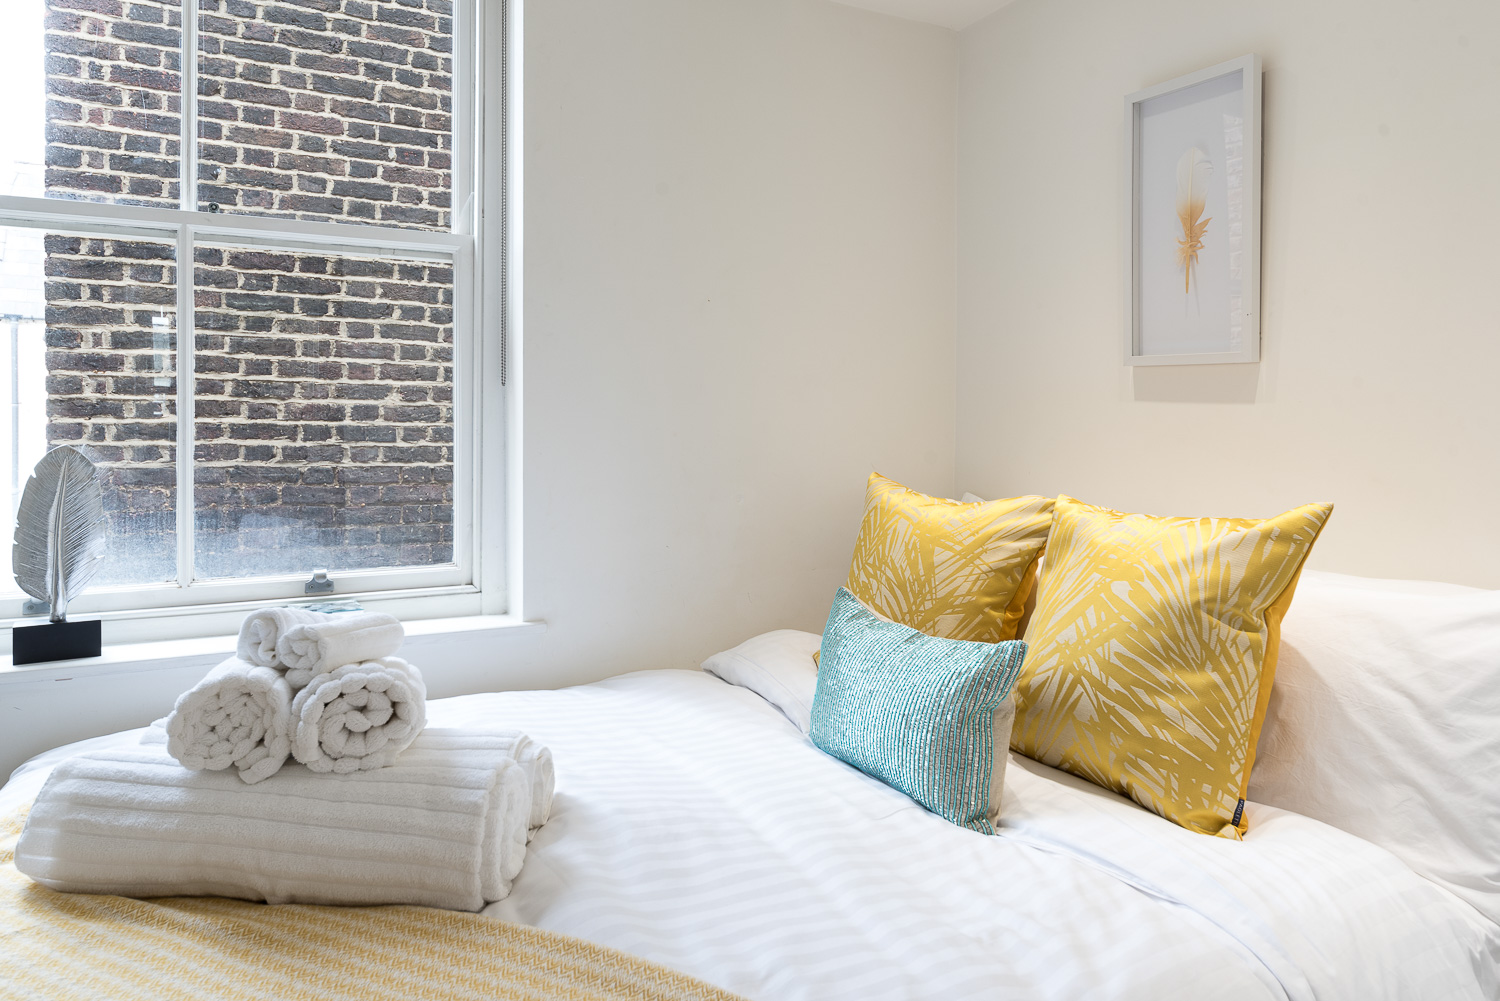 Lovelydays luxury service apartment rental - London - Fitzrovia - Foley Street II - Lovelysuite - 2 bedrooms - 2 bathrooms - Double bed - 5d3c90f07d03 - Lovelydays